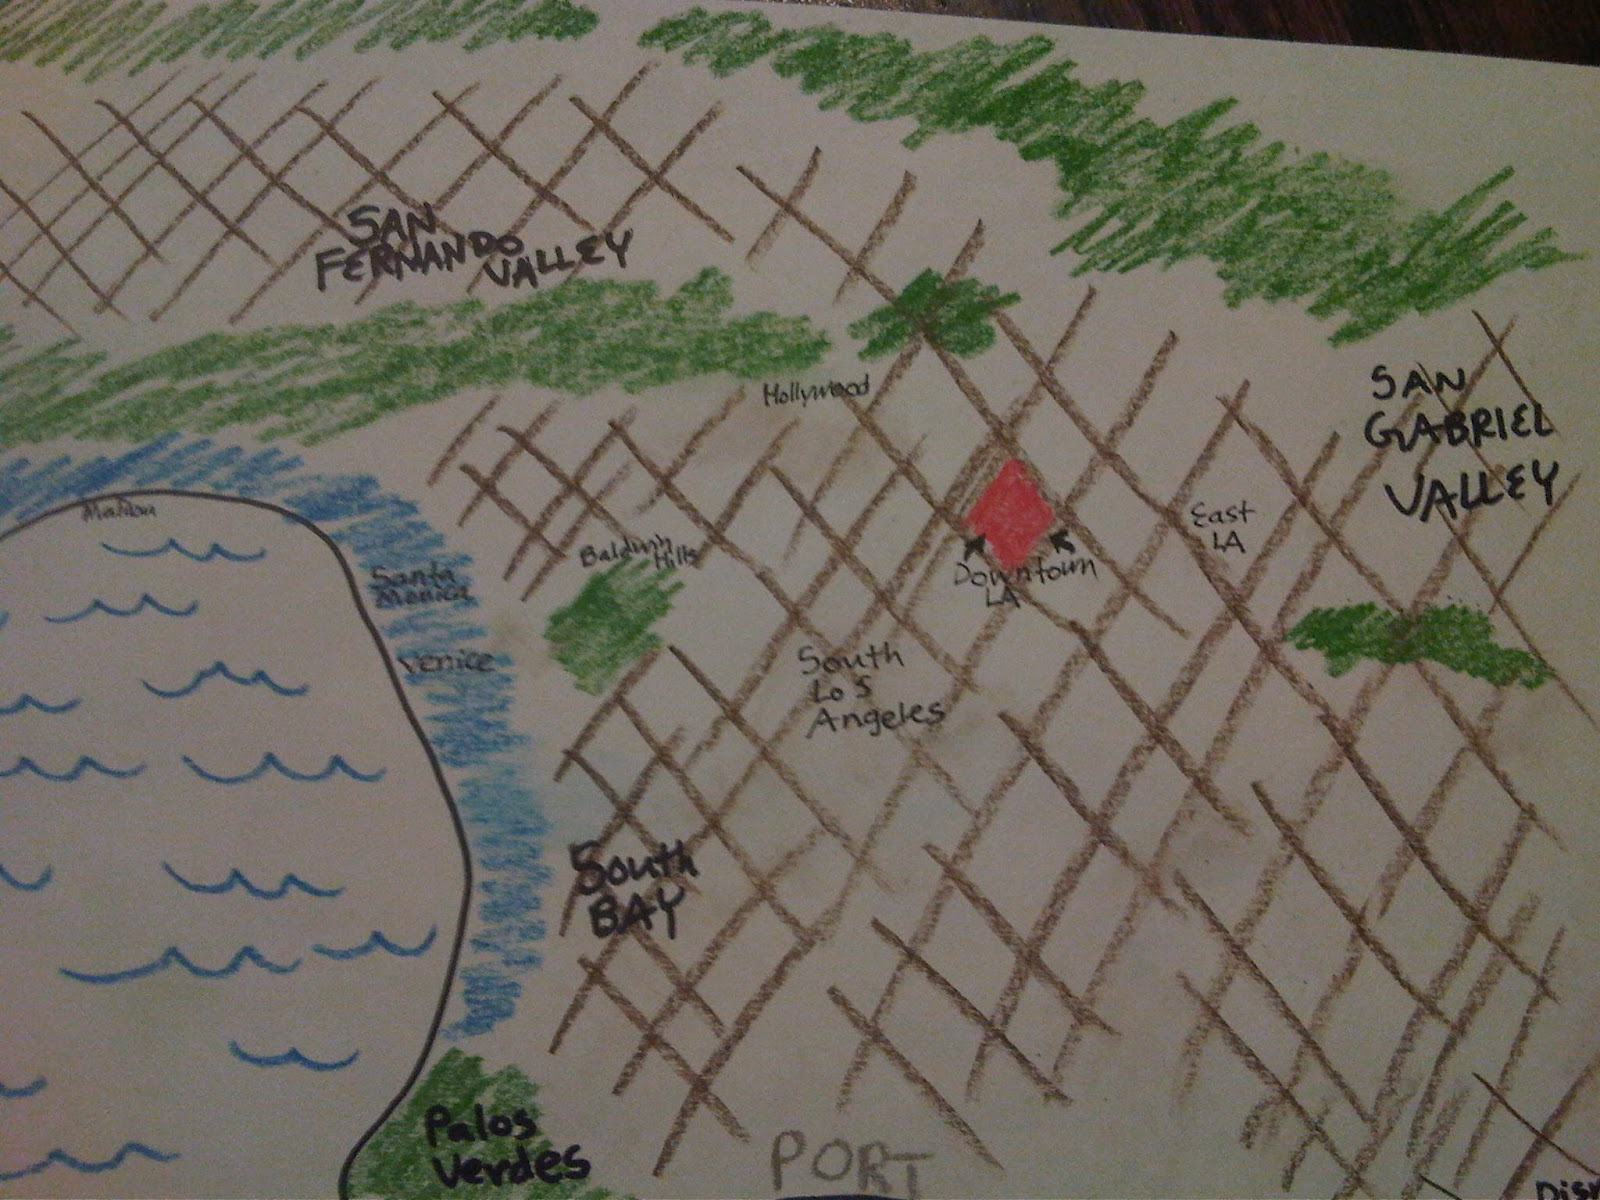 a map i doodled green is foothills blue is surfurbia brown lines are plains of id and the pink diamond is downtown la autopia is excluded